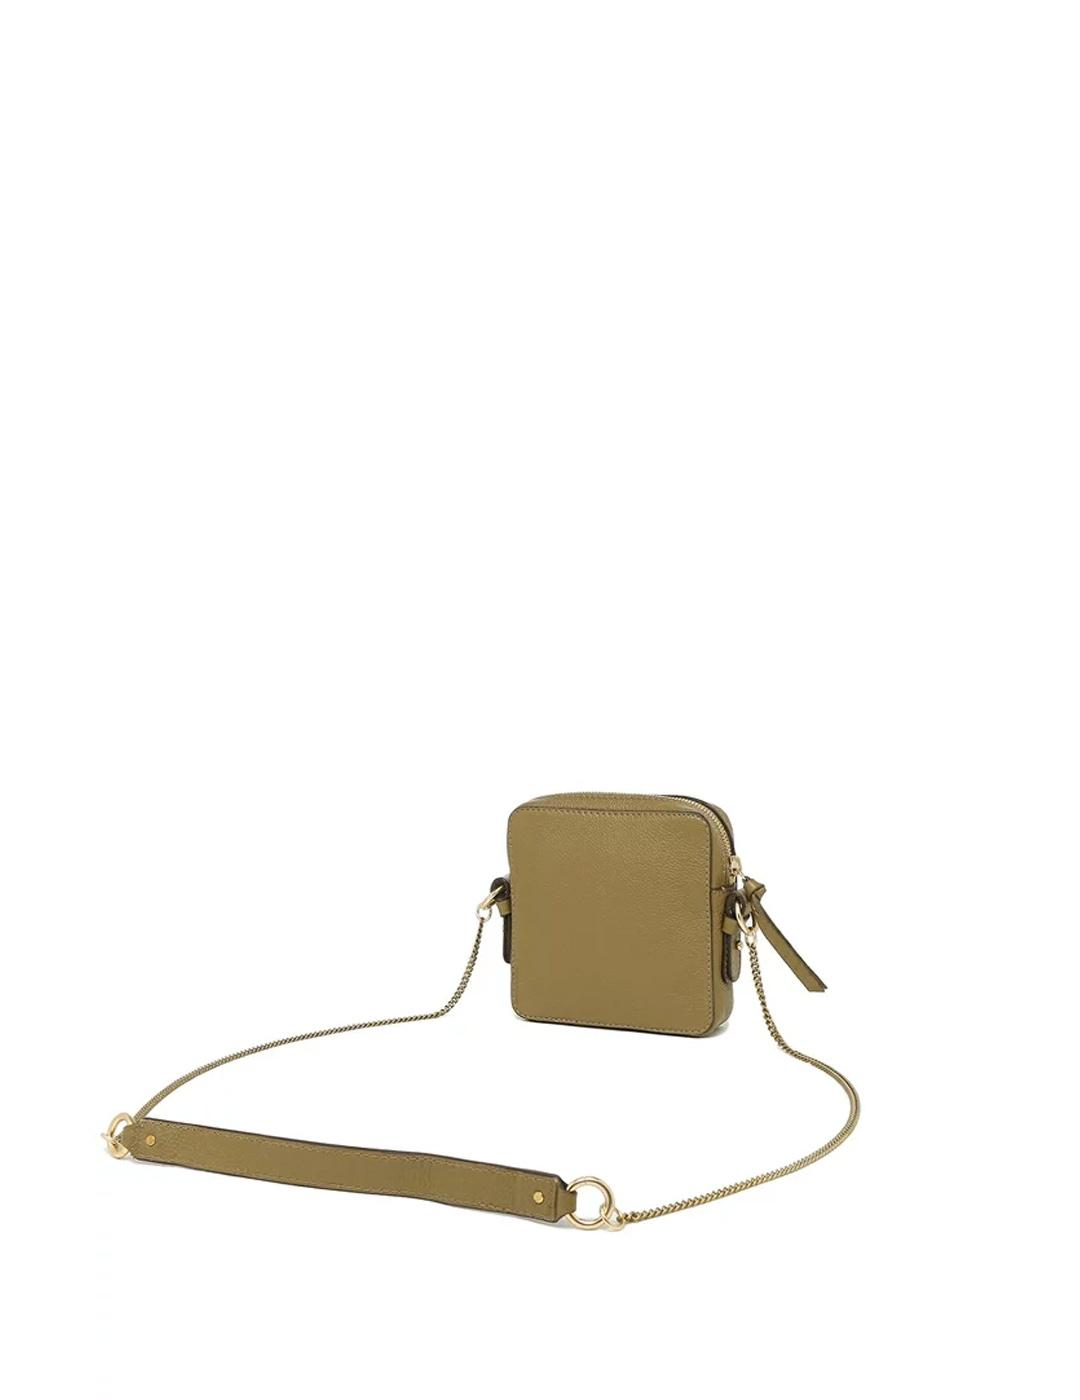 Bolso See by Chloé khaki bandolera Shoulder bag